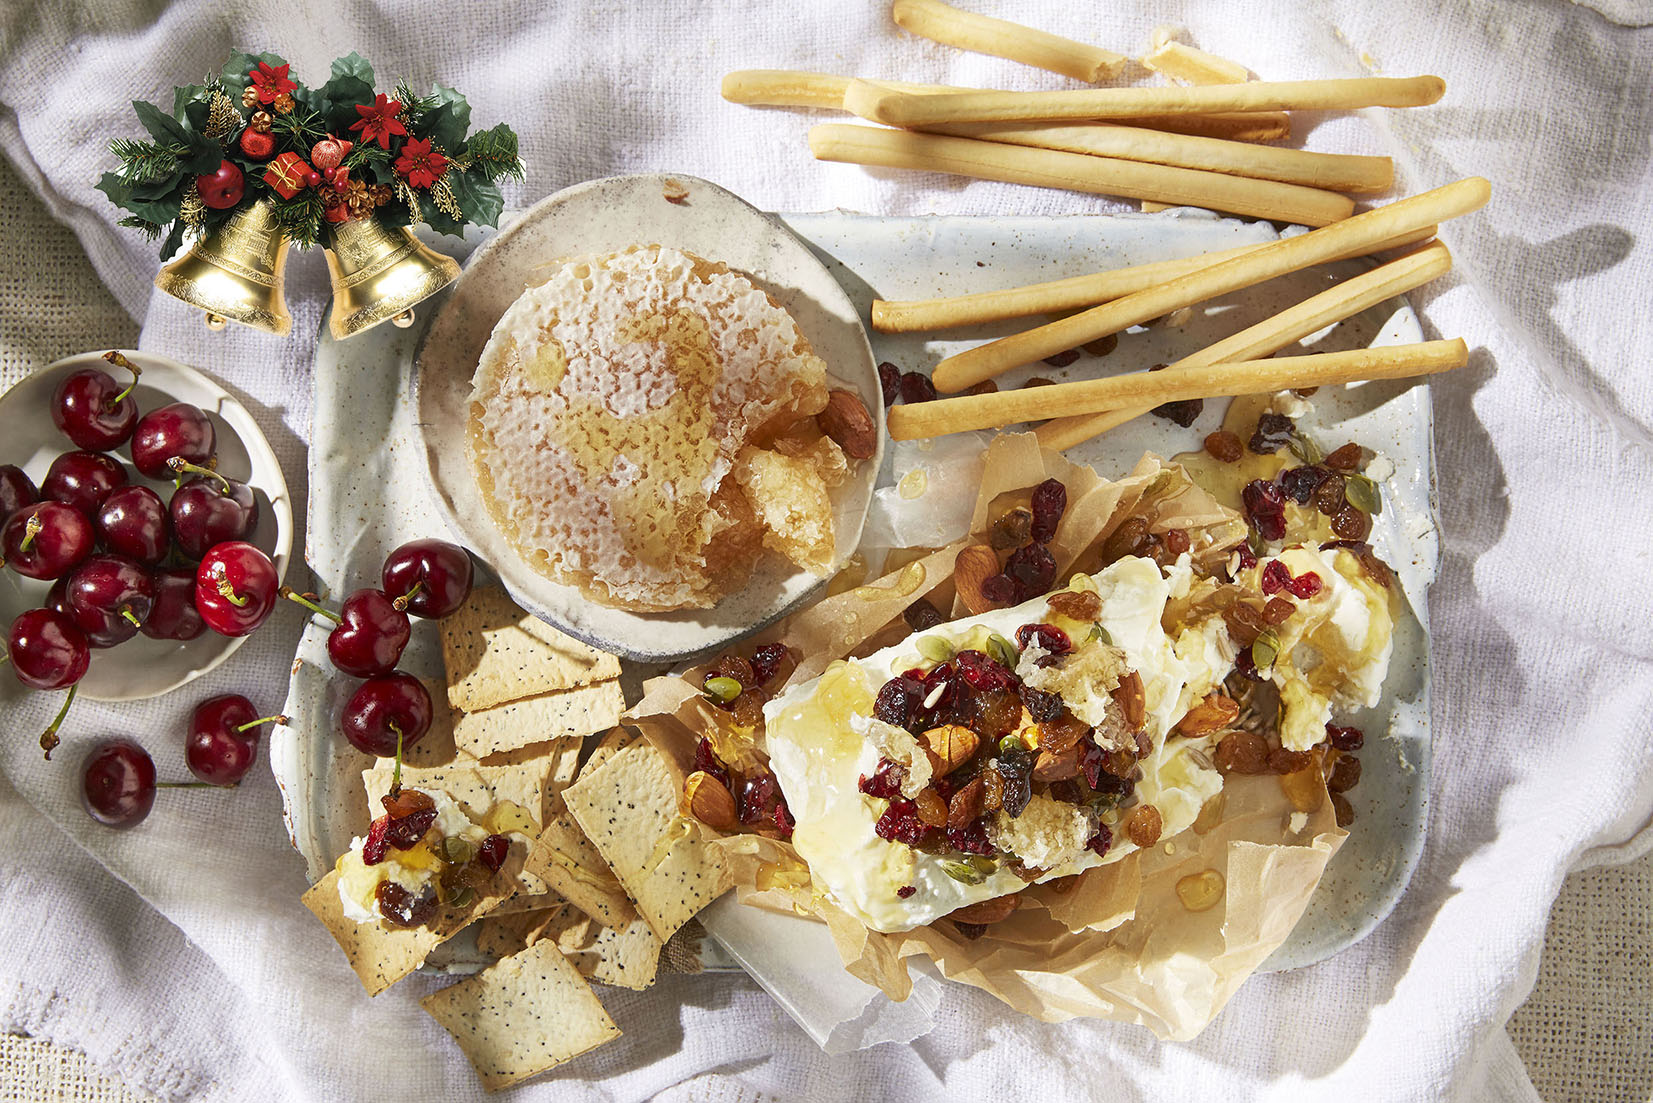 Xmas Card Grissini Goats Cheese Trail Mix Hone rotated web